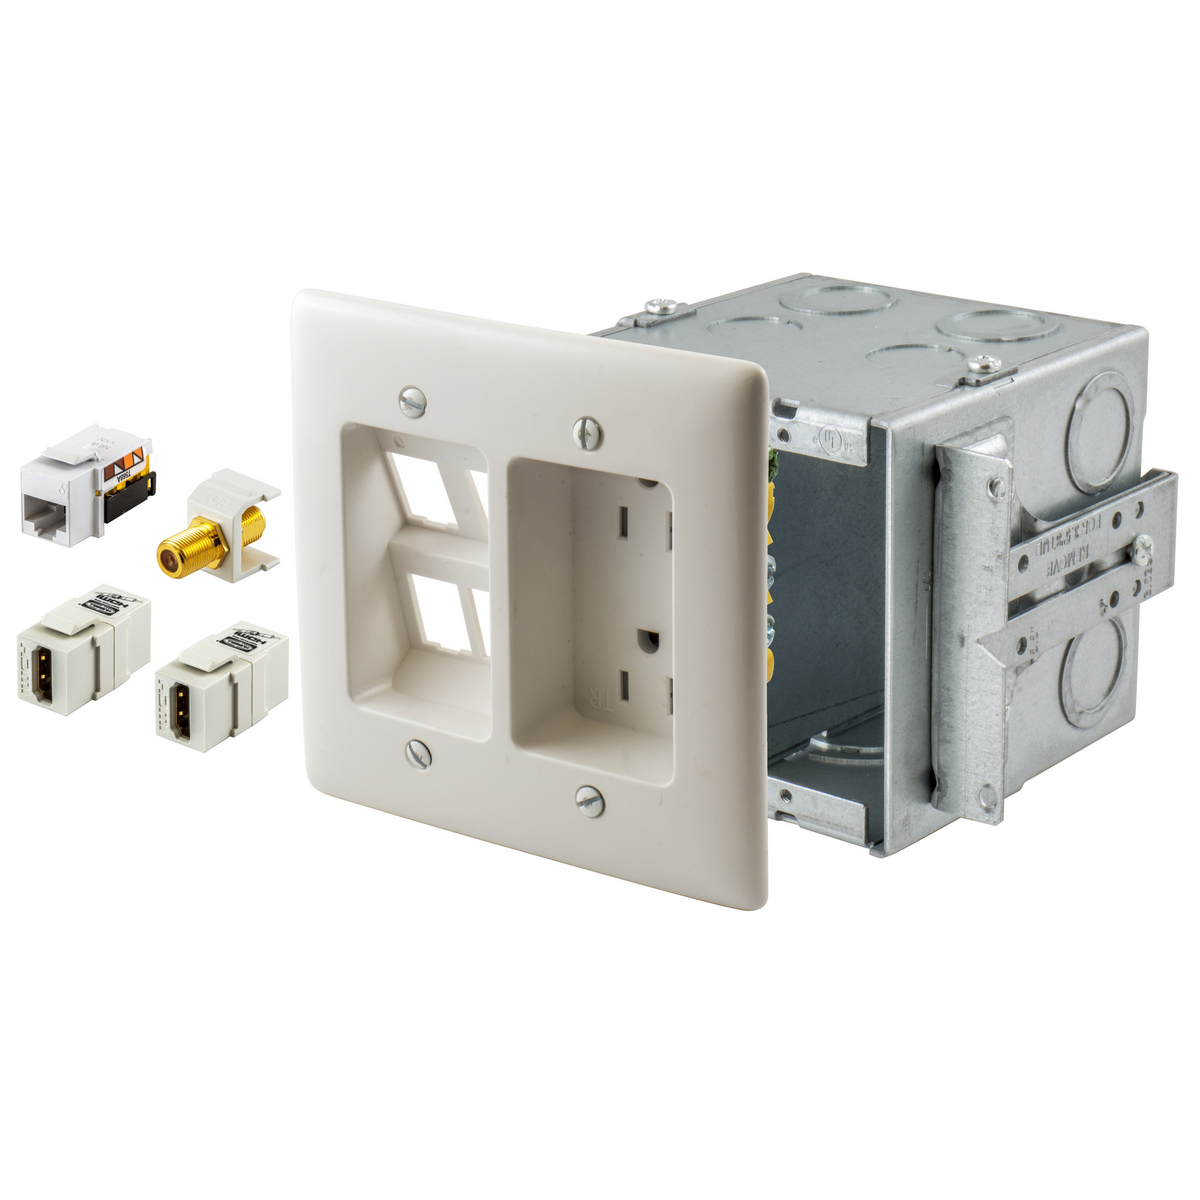 HBL985 | Wallboxes | Boxes | Electrical & Electronic | Products ...